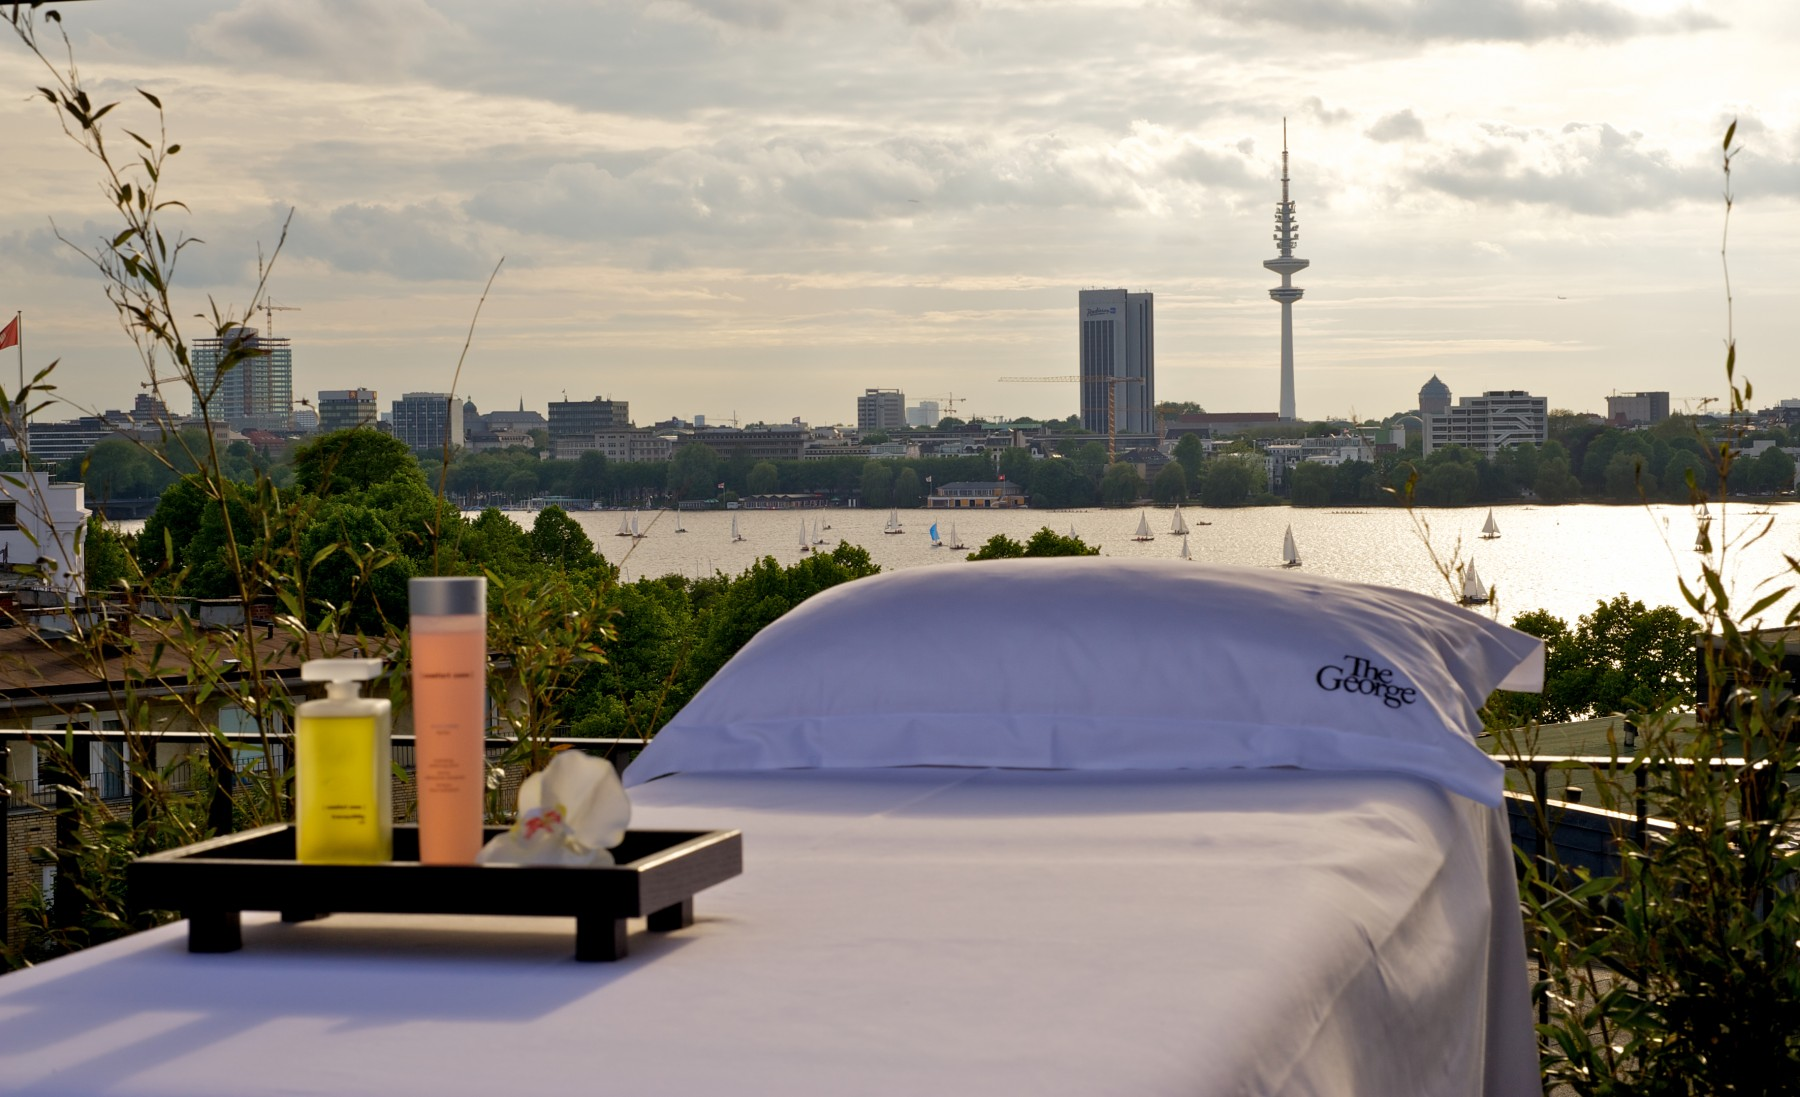 SPA Hamburg Wellness | Im The George Hotel Hamburg an der Alster